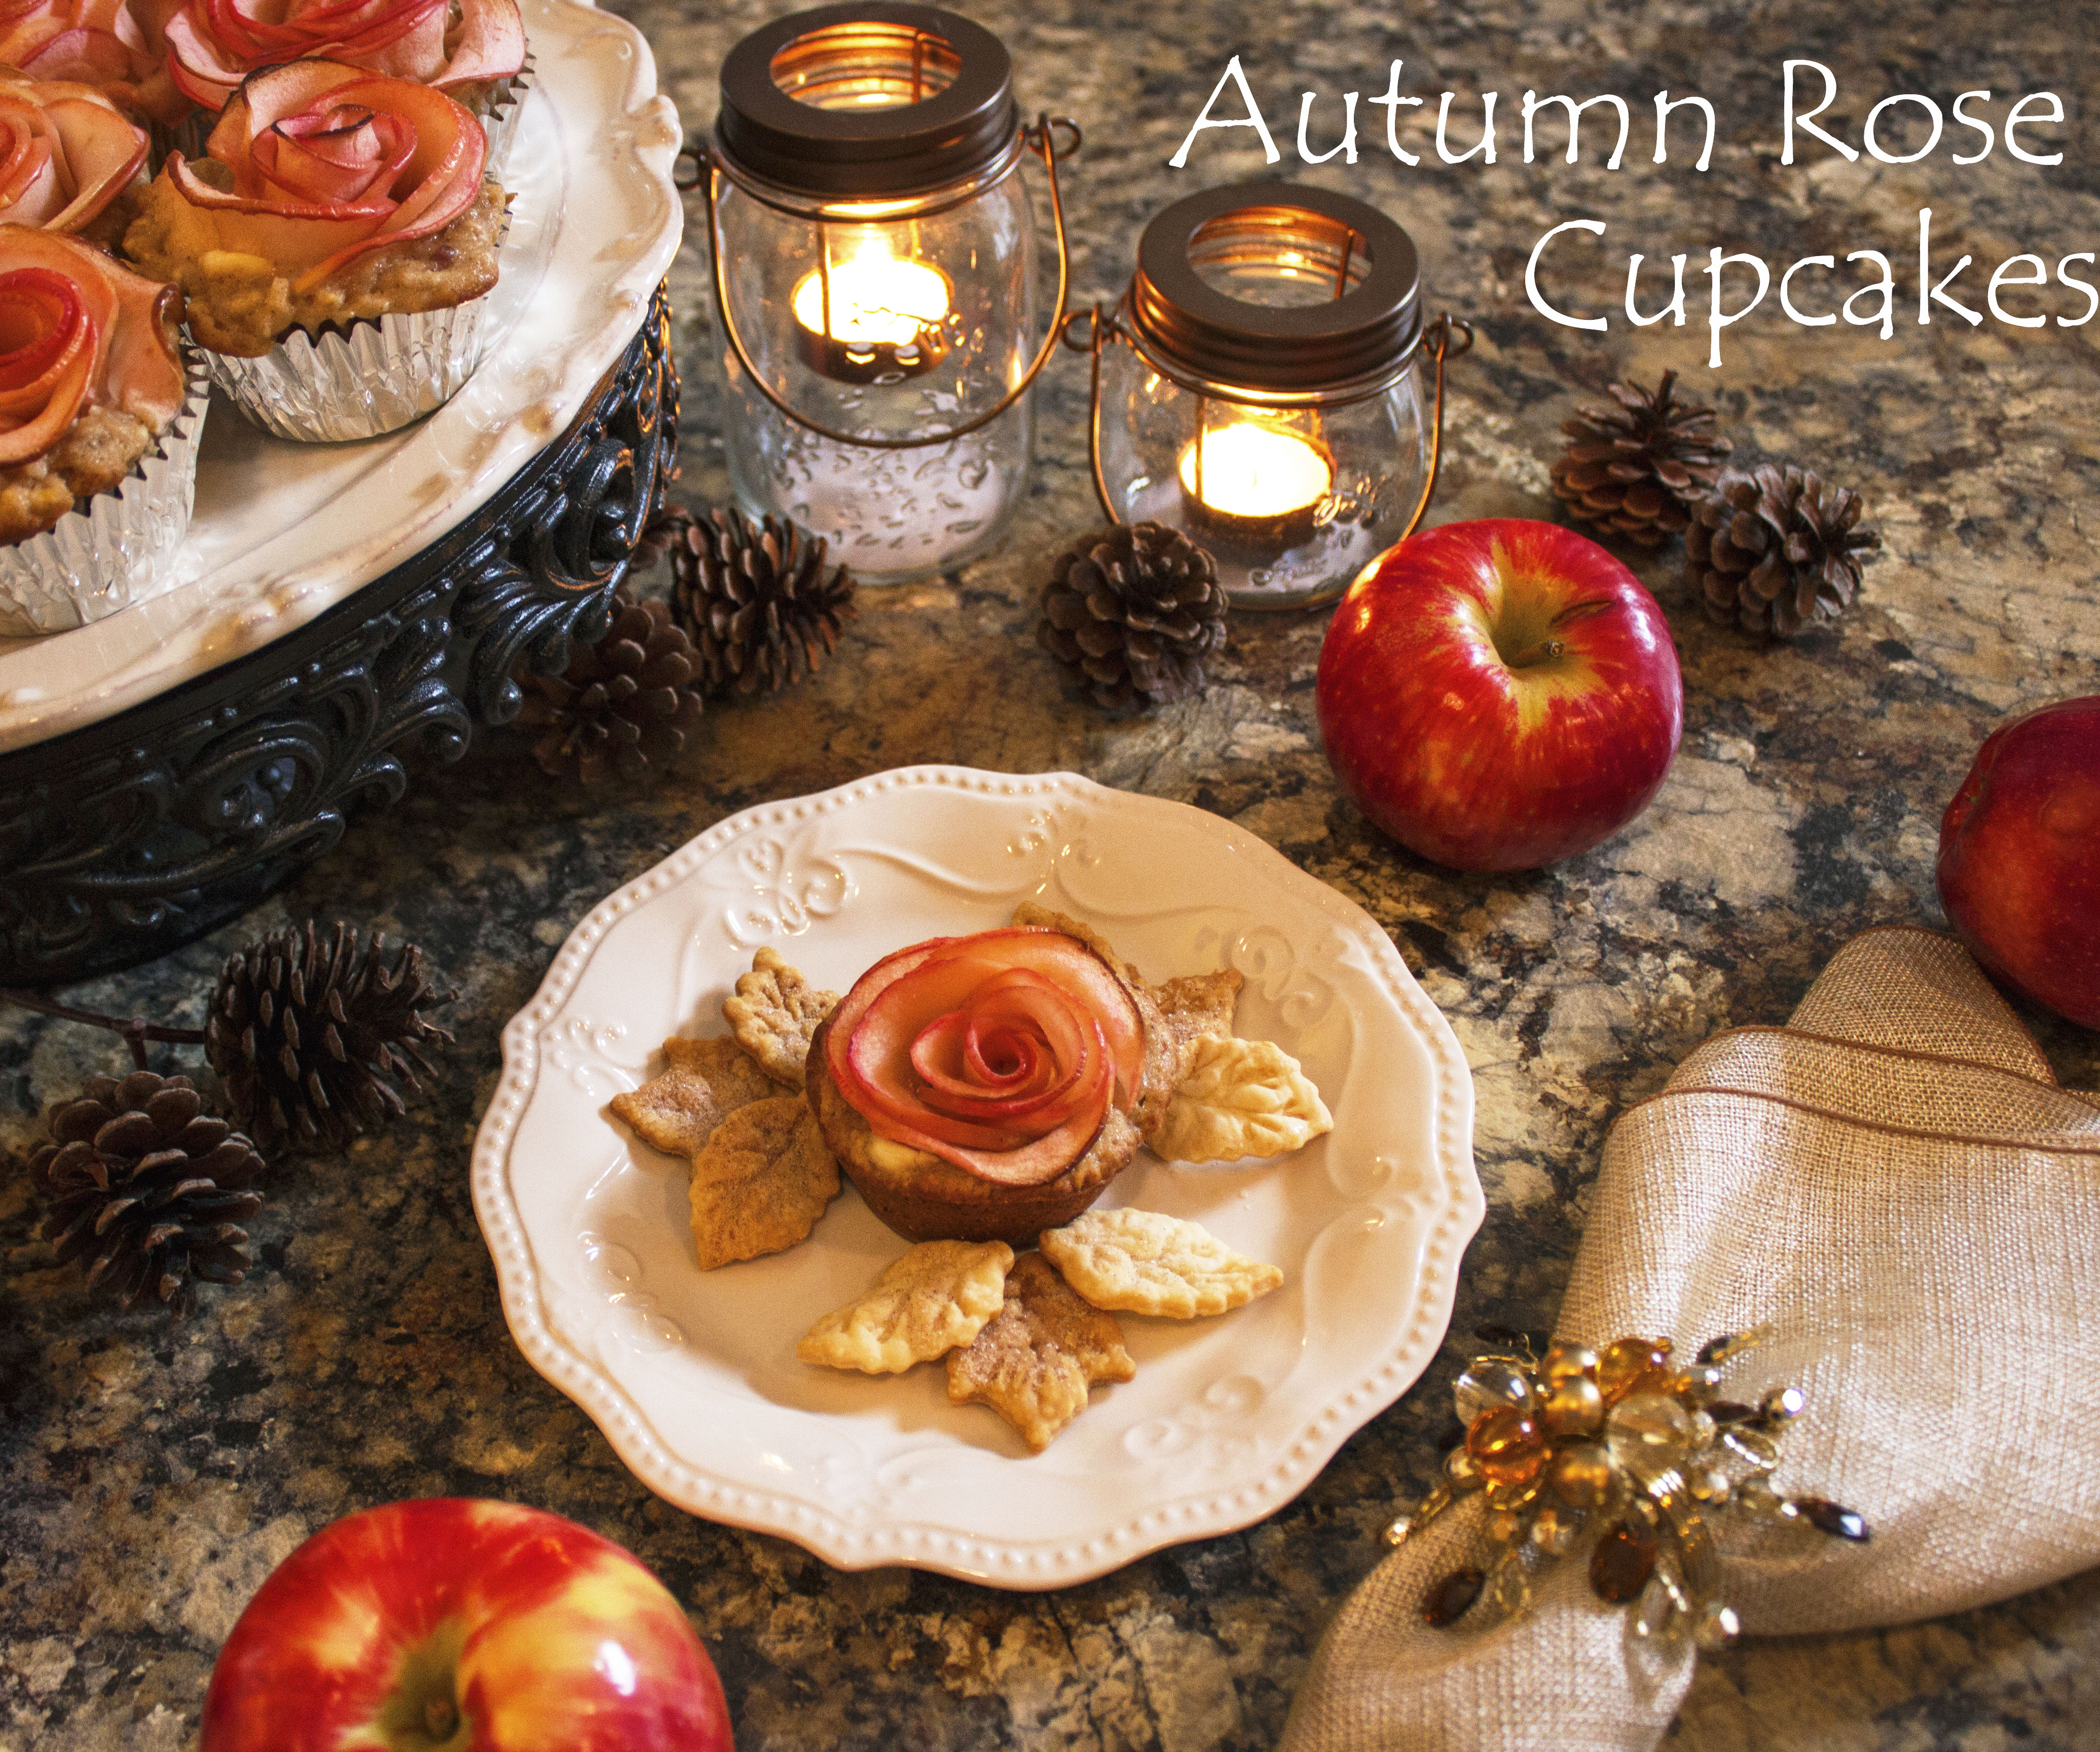 Autumn Rose Cupcakes